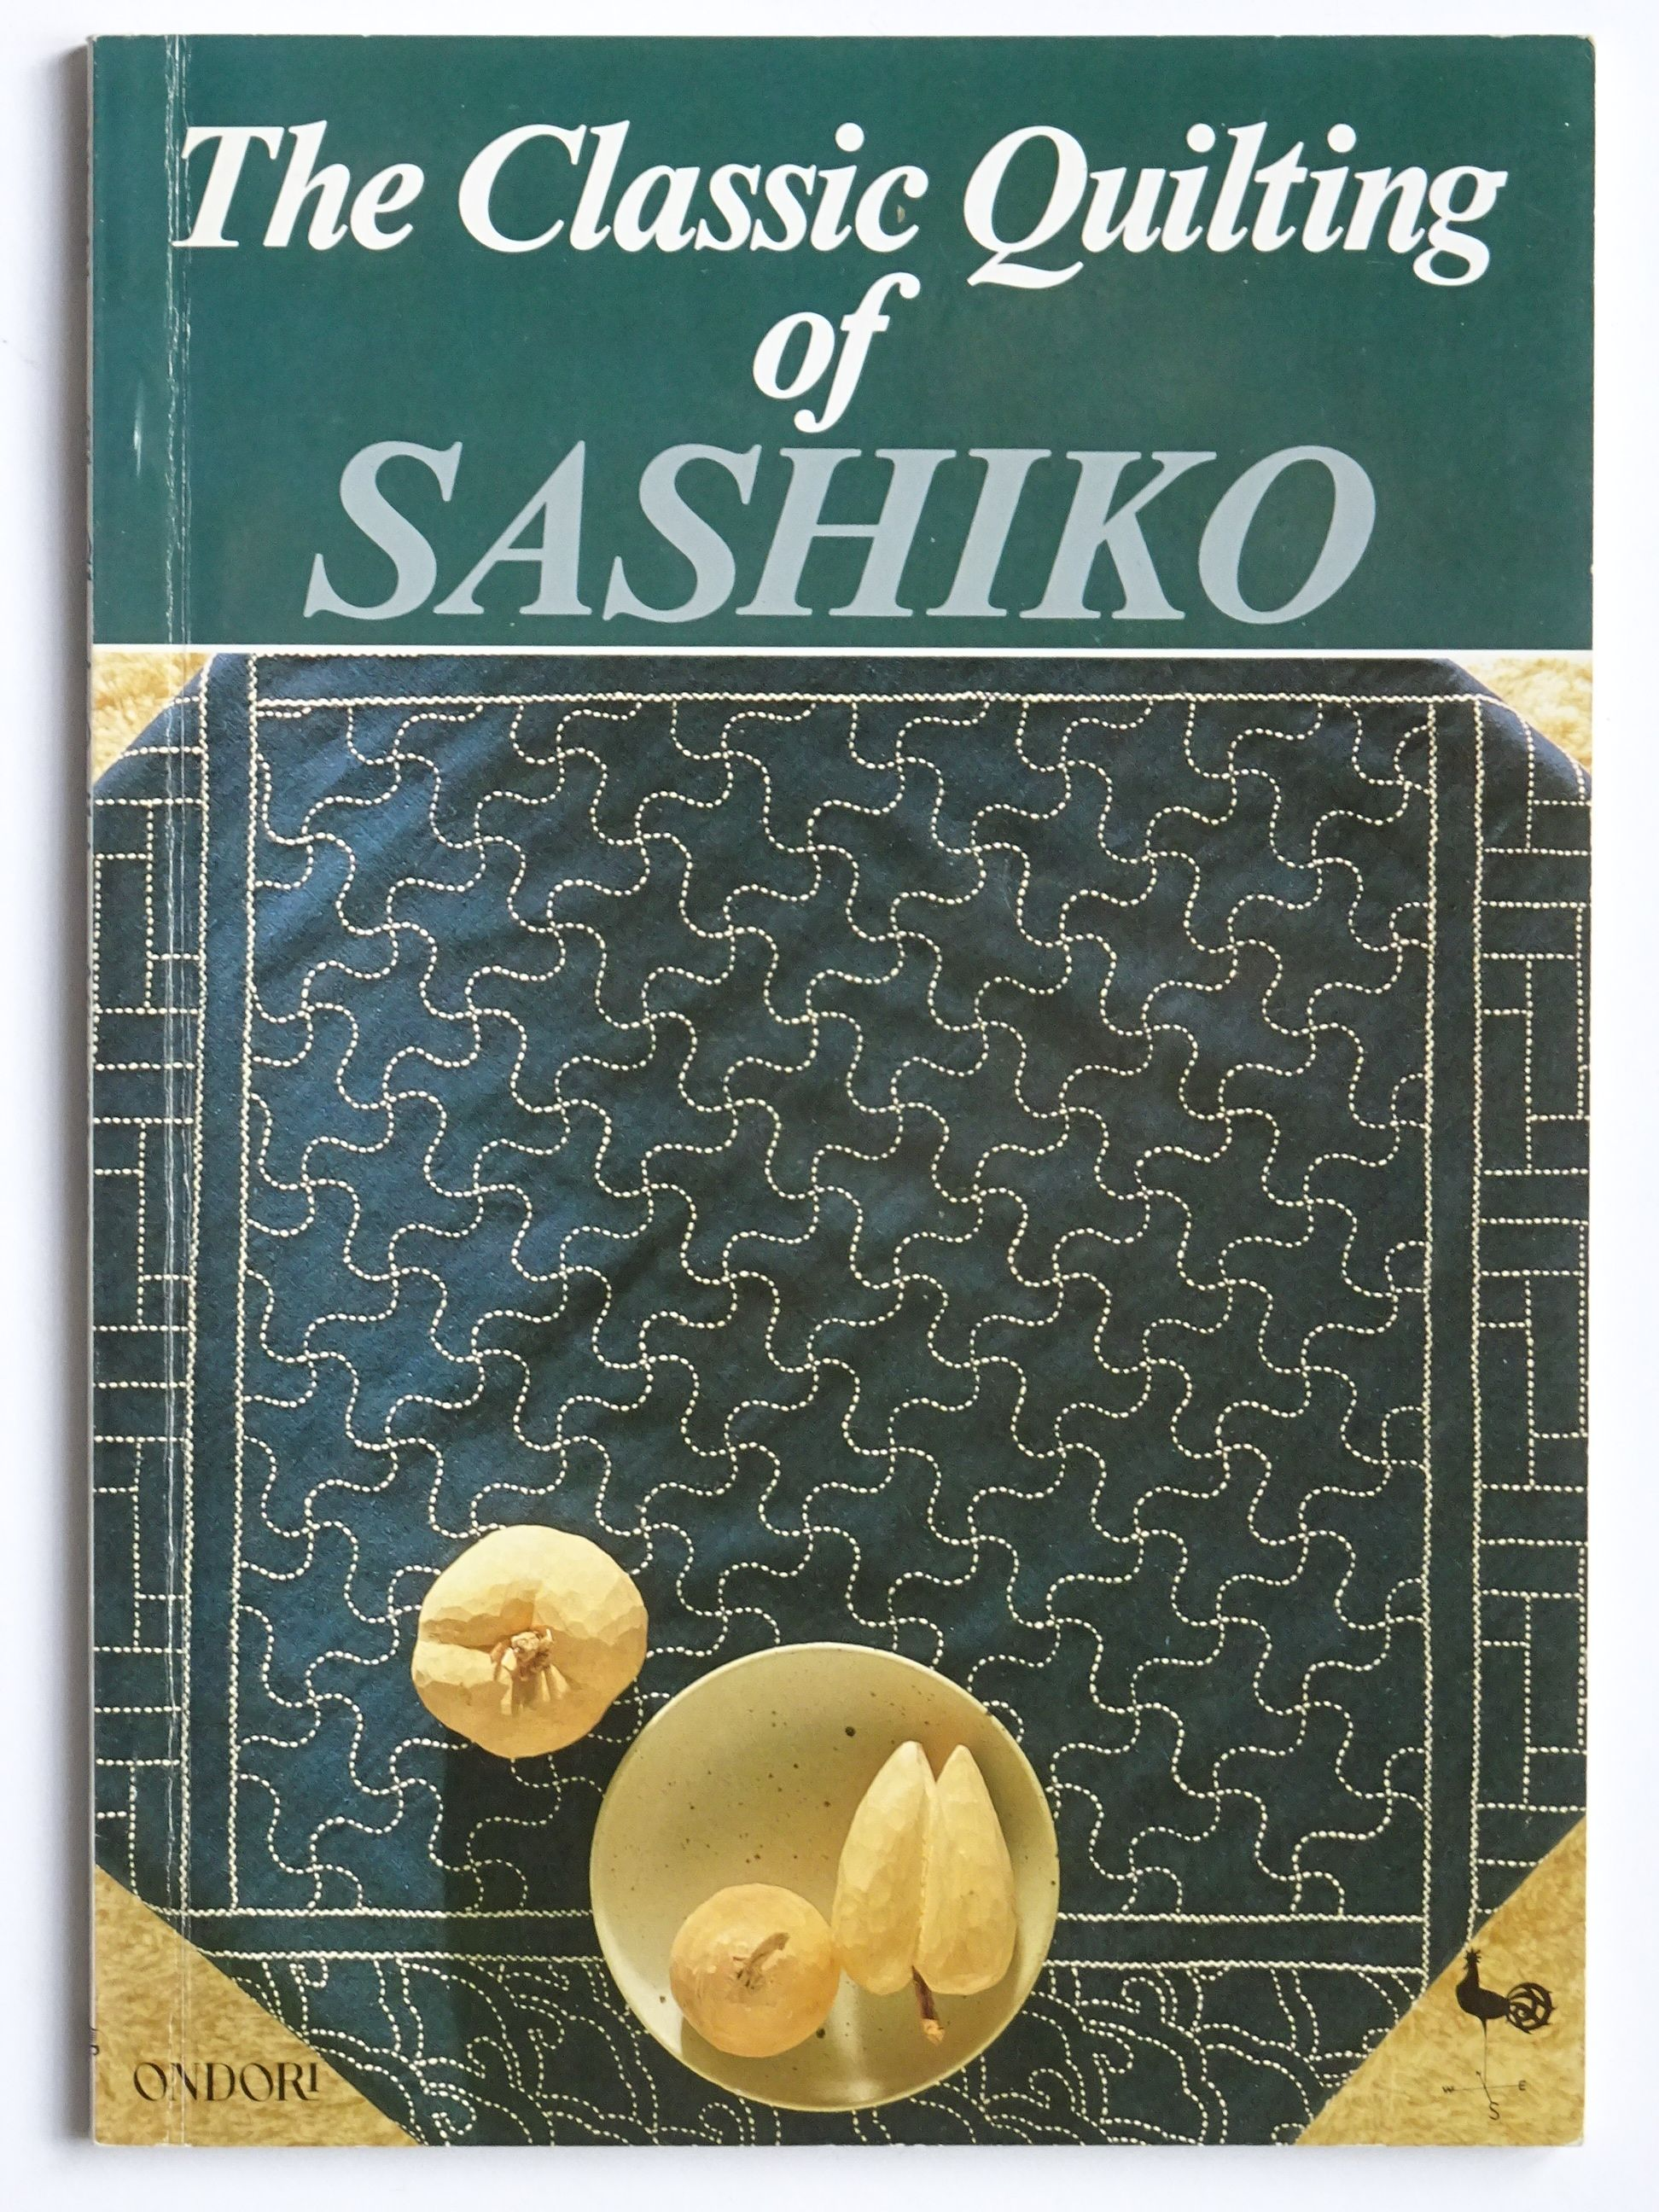 Ondori - The Classic Quiltmaking of Sashiko